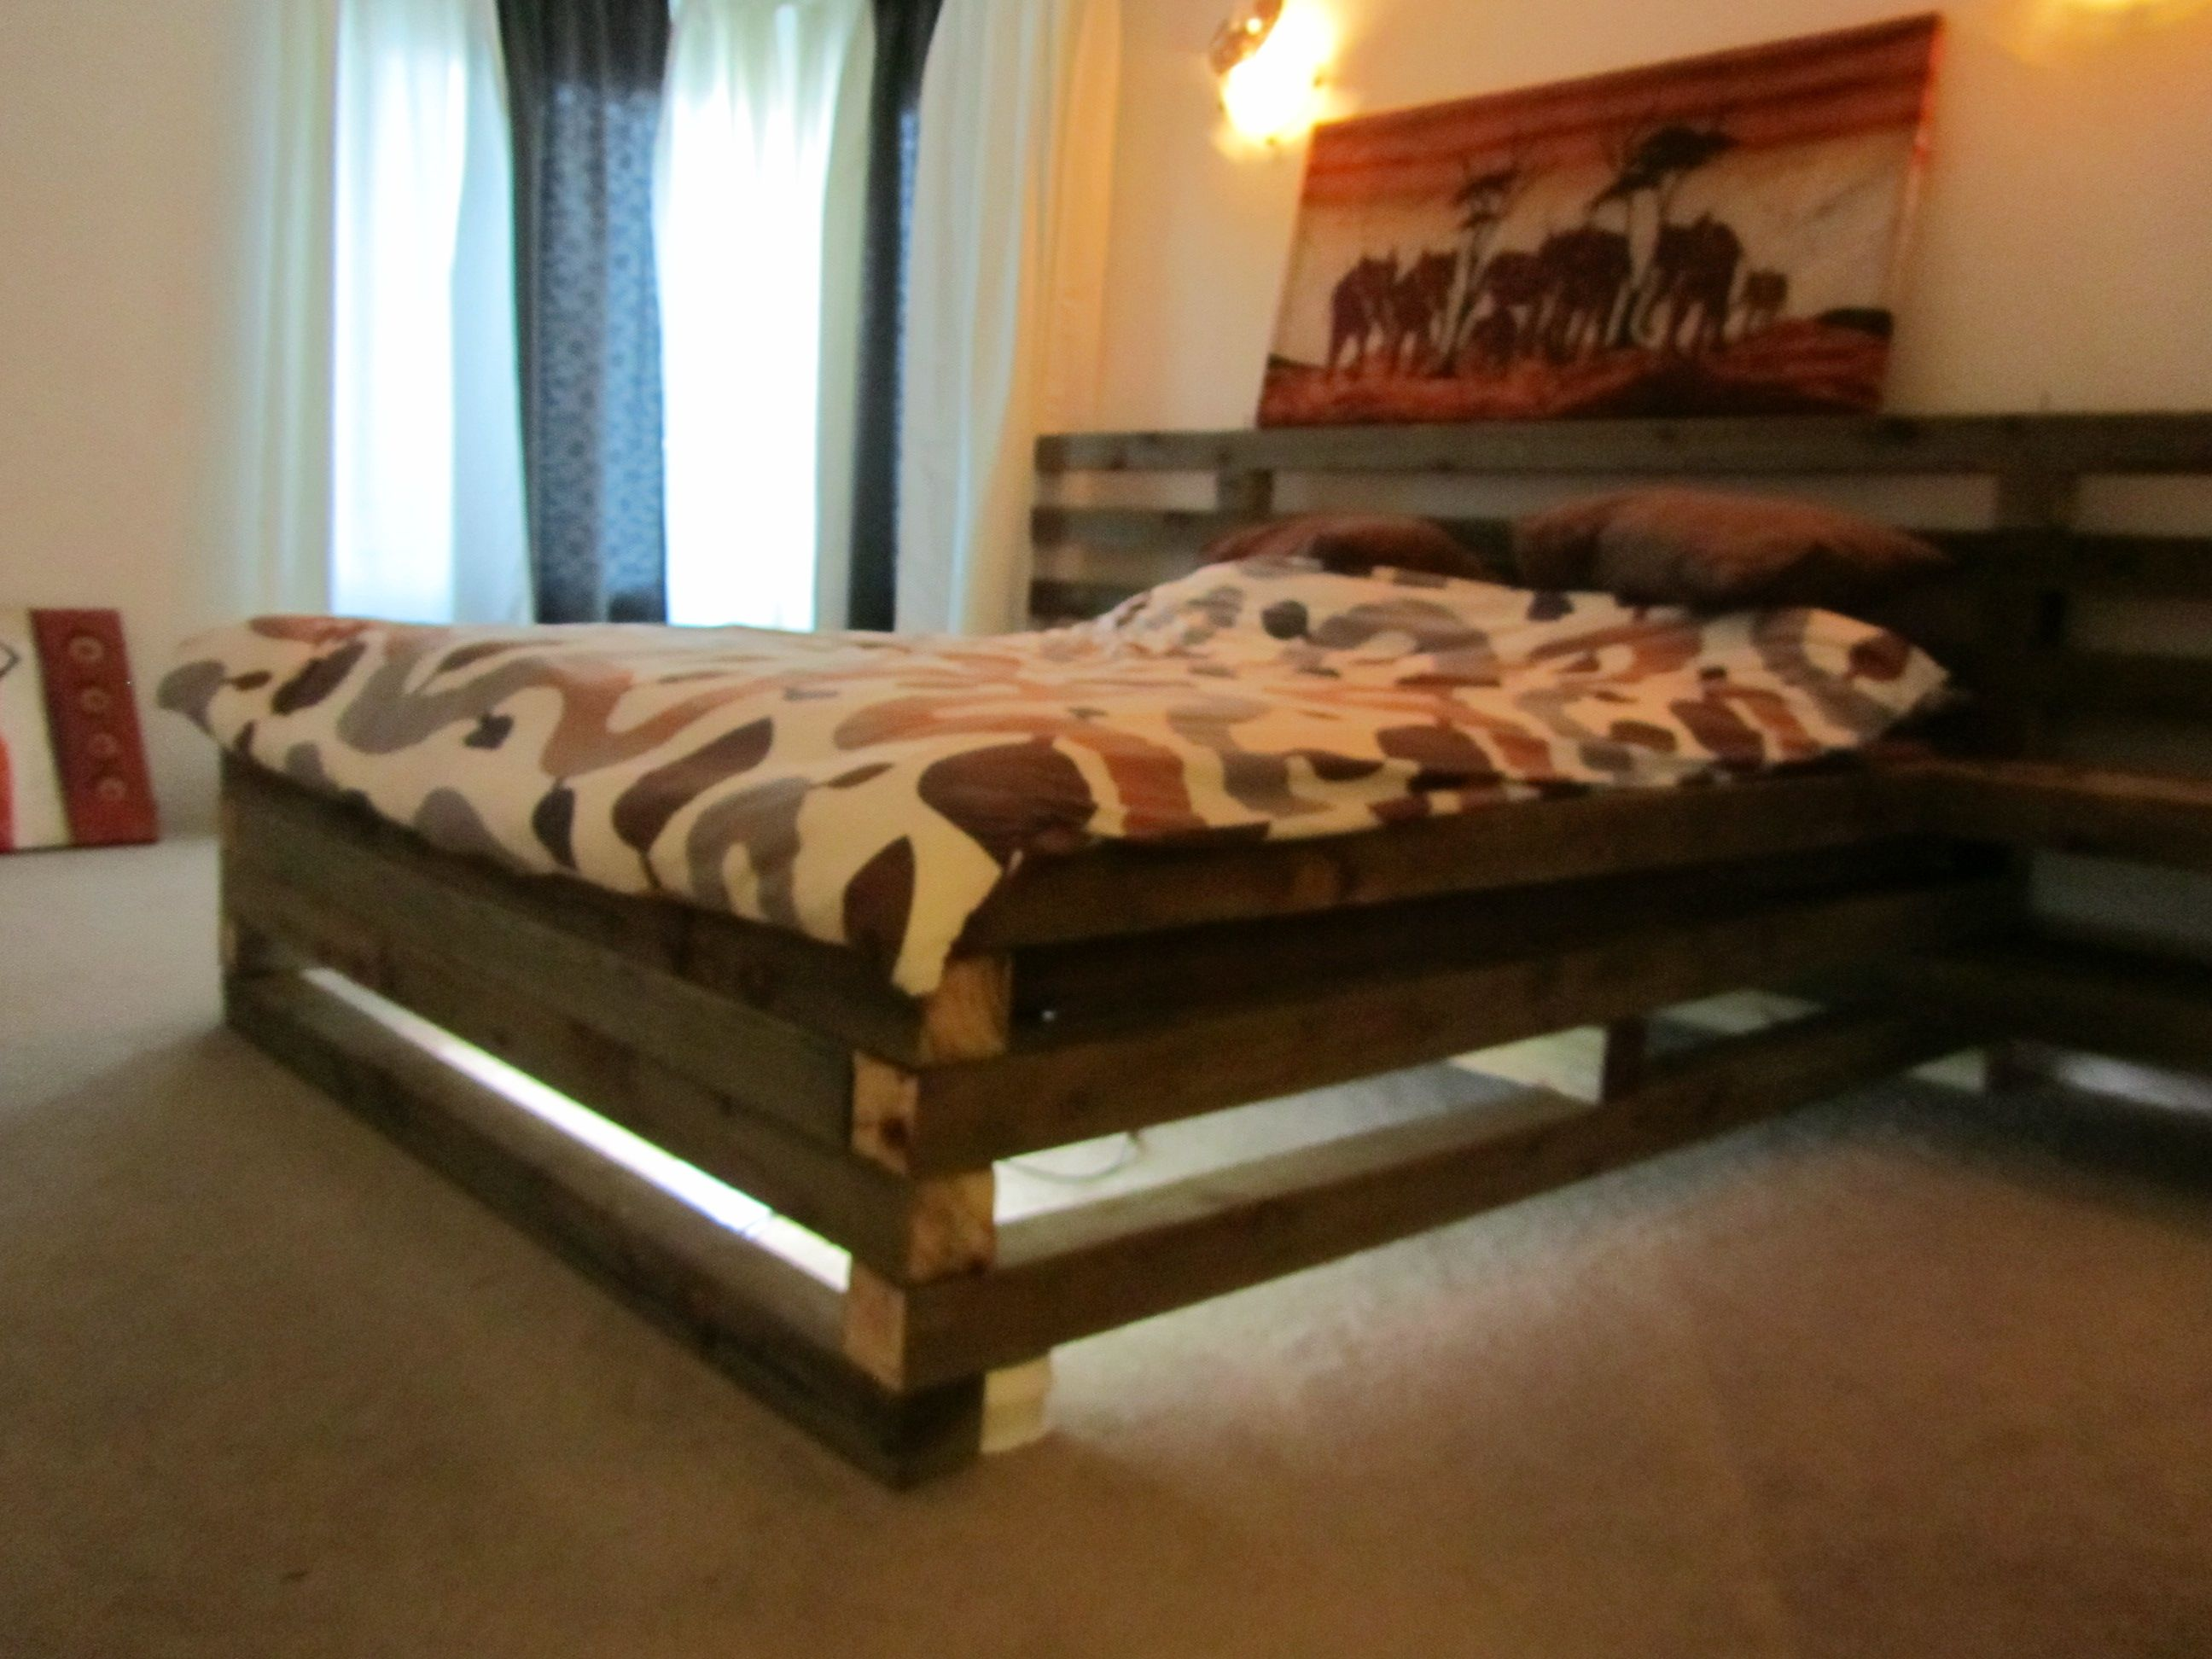 Bed made from home depot logs with fluorescent